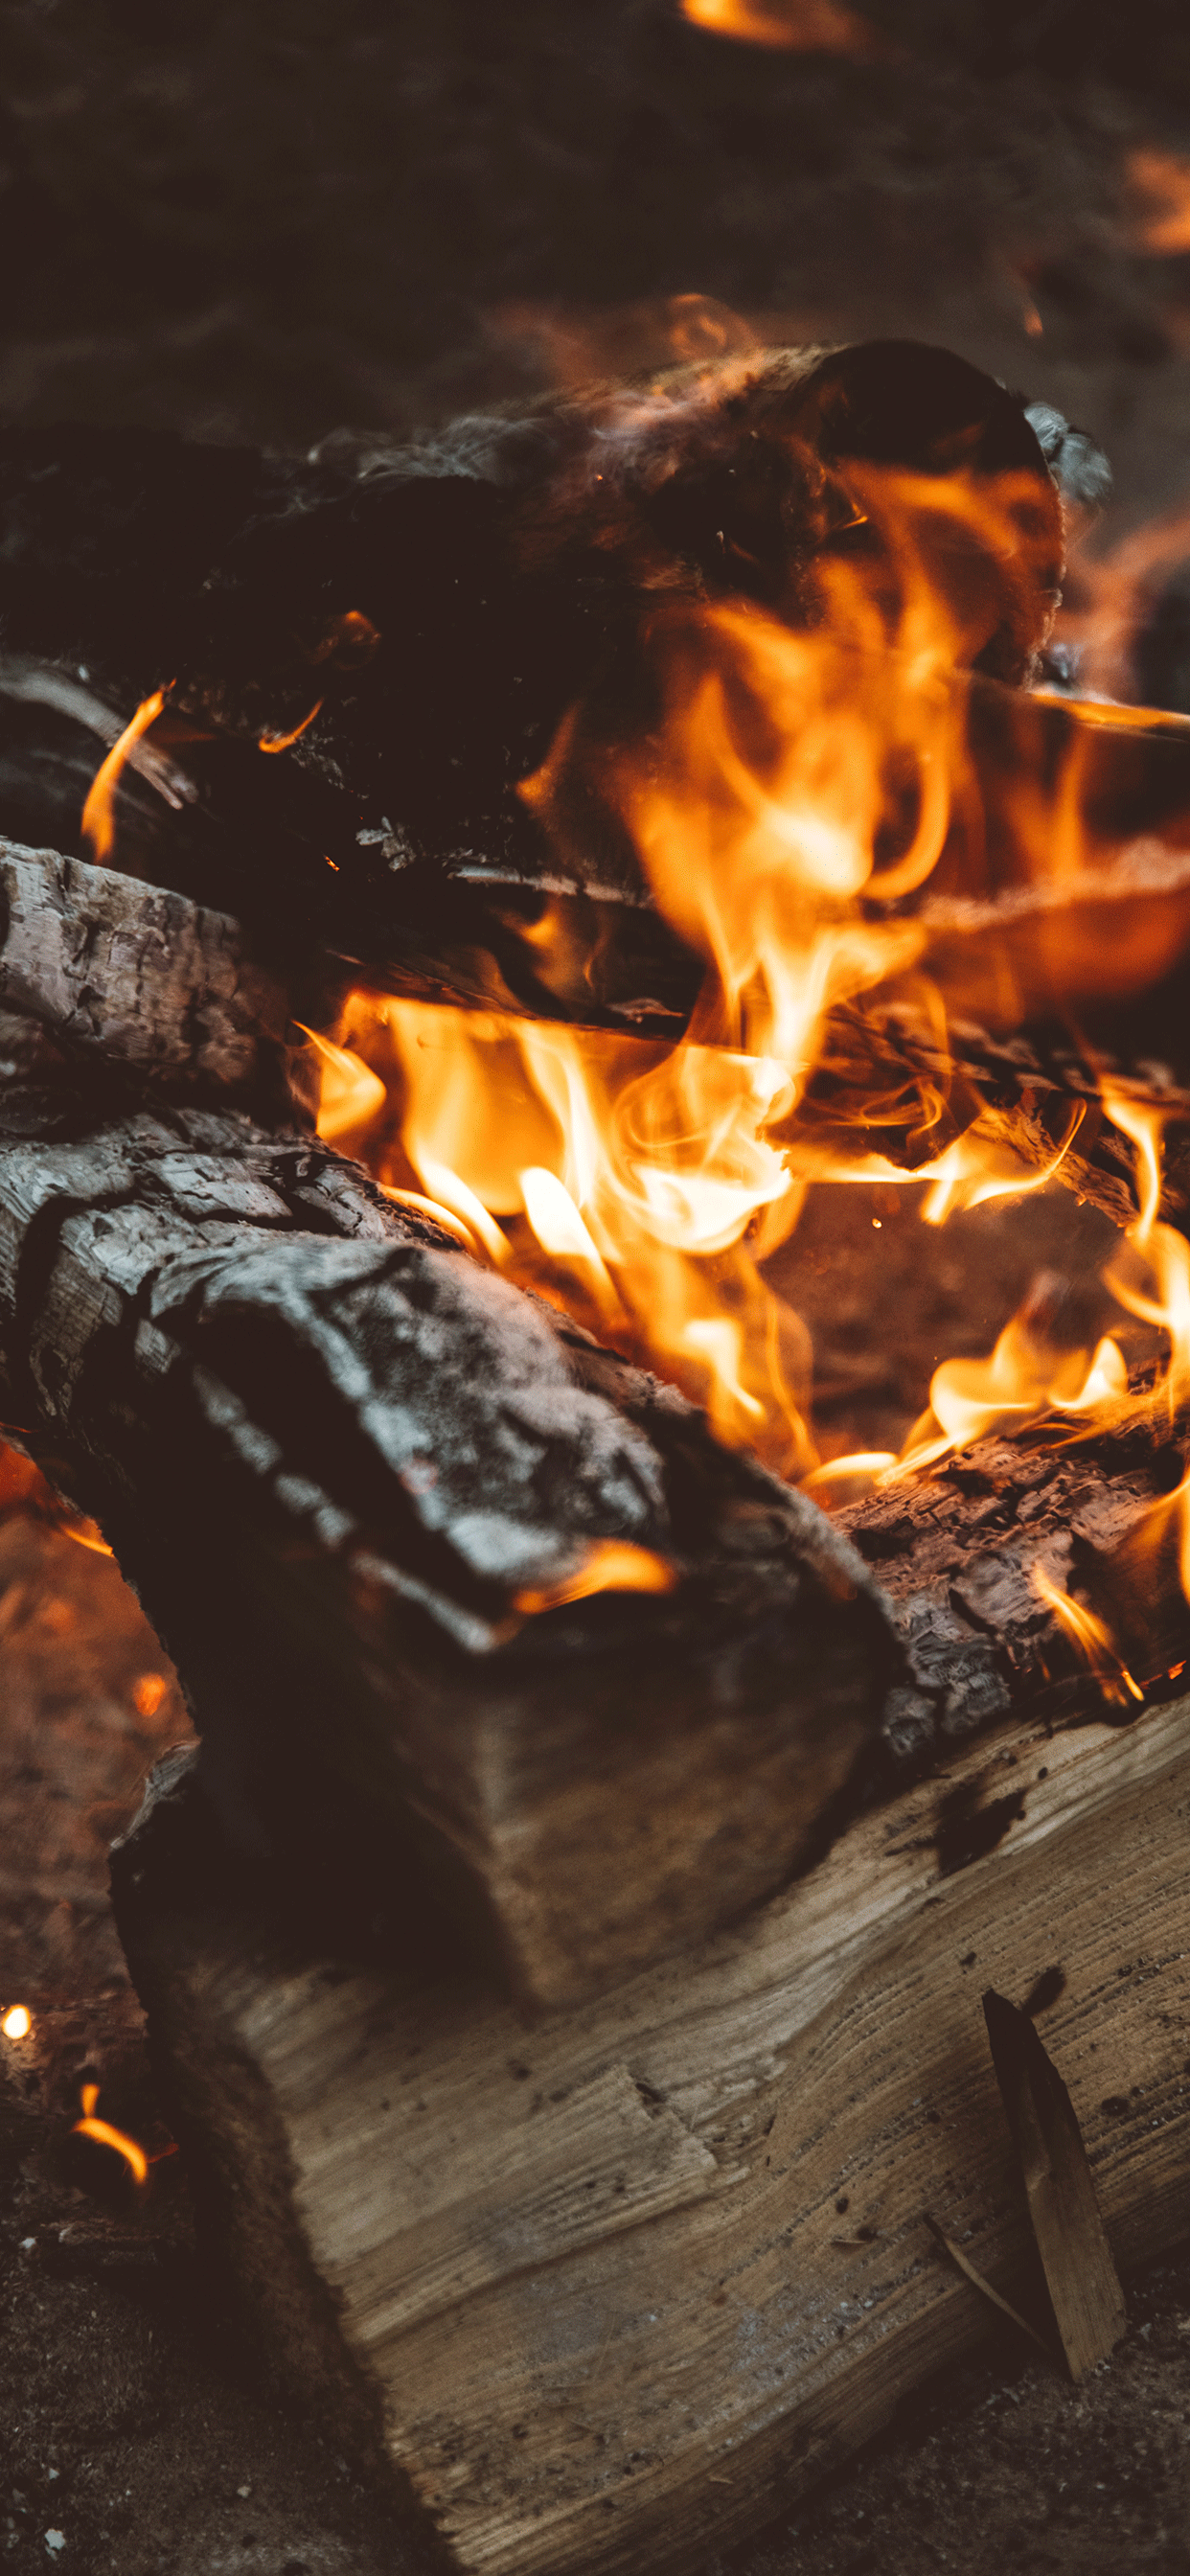 iPhone wallpapers fire wood Fonds d'écran iPhone du 11/07/2019